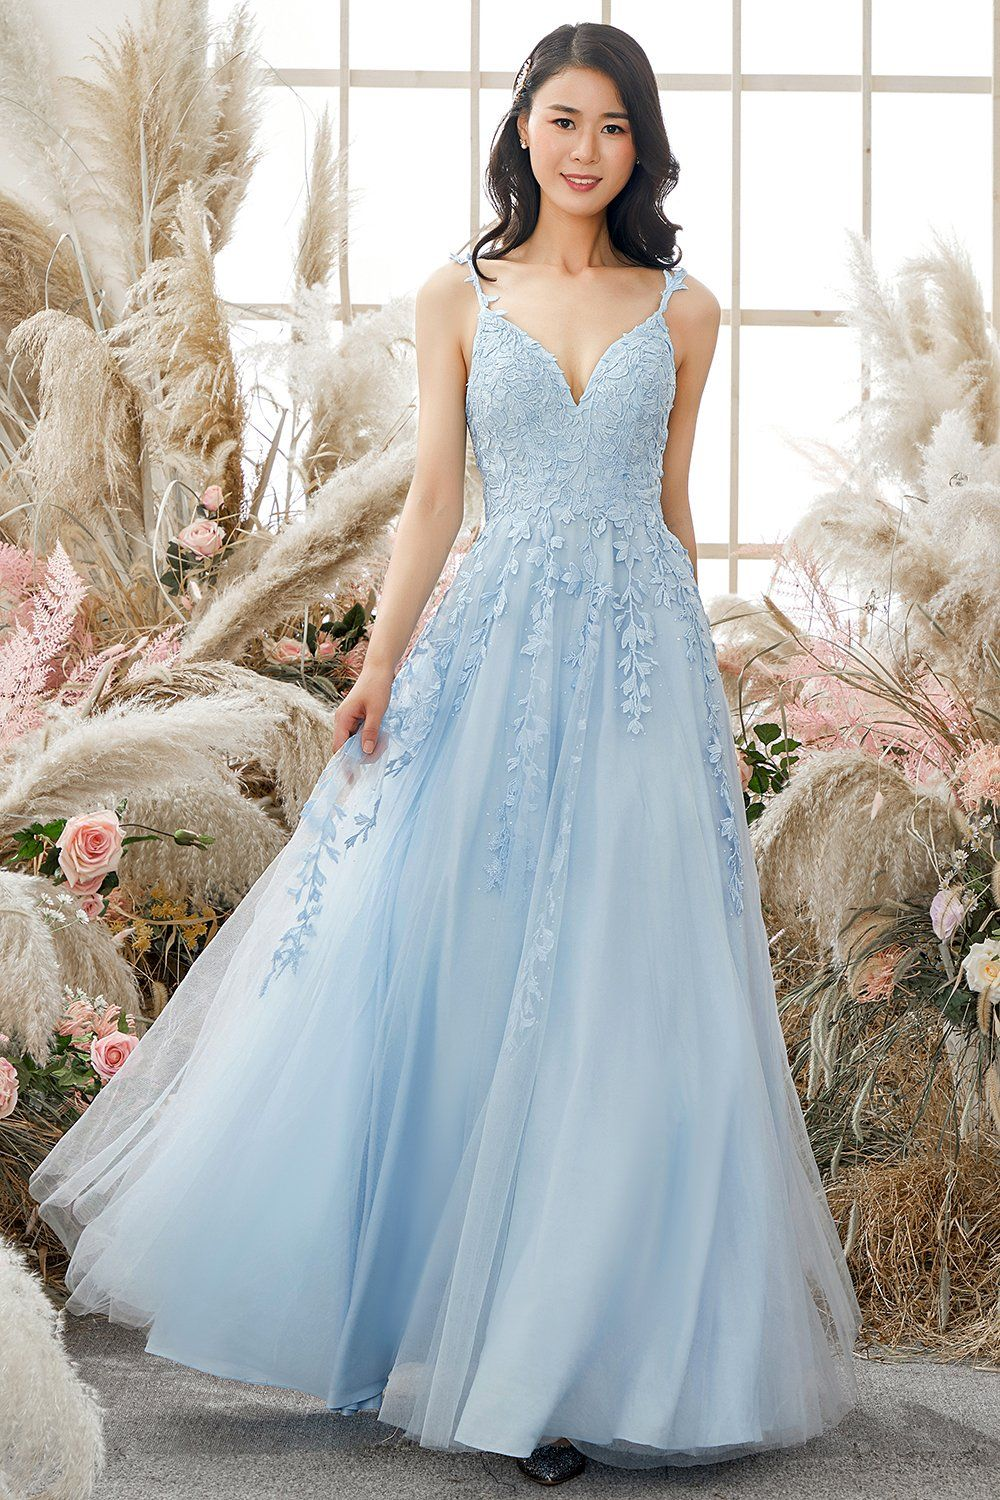 Light blue prom dress with embroidery